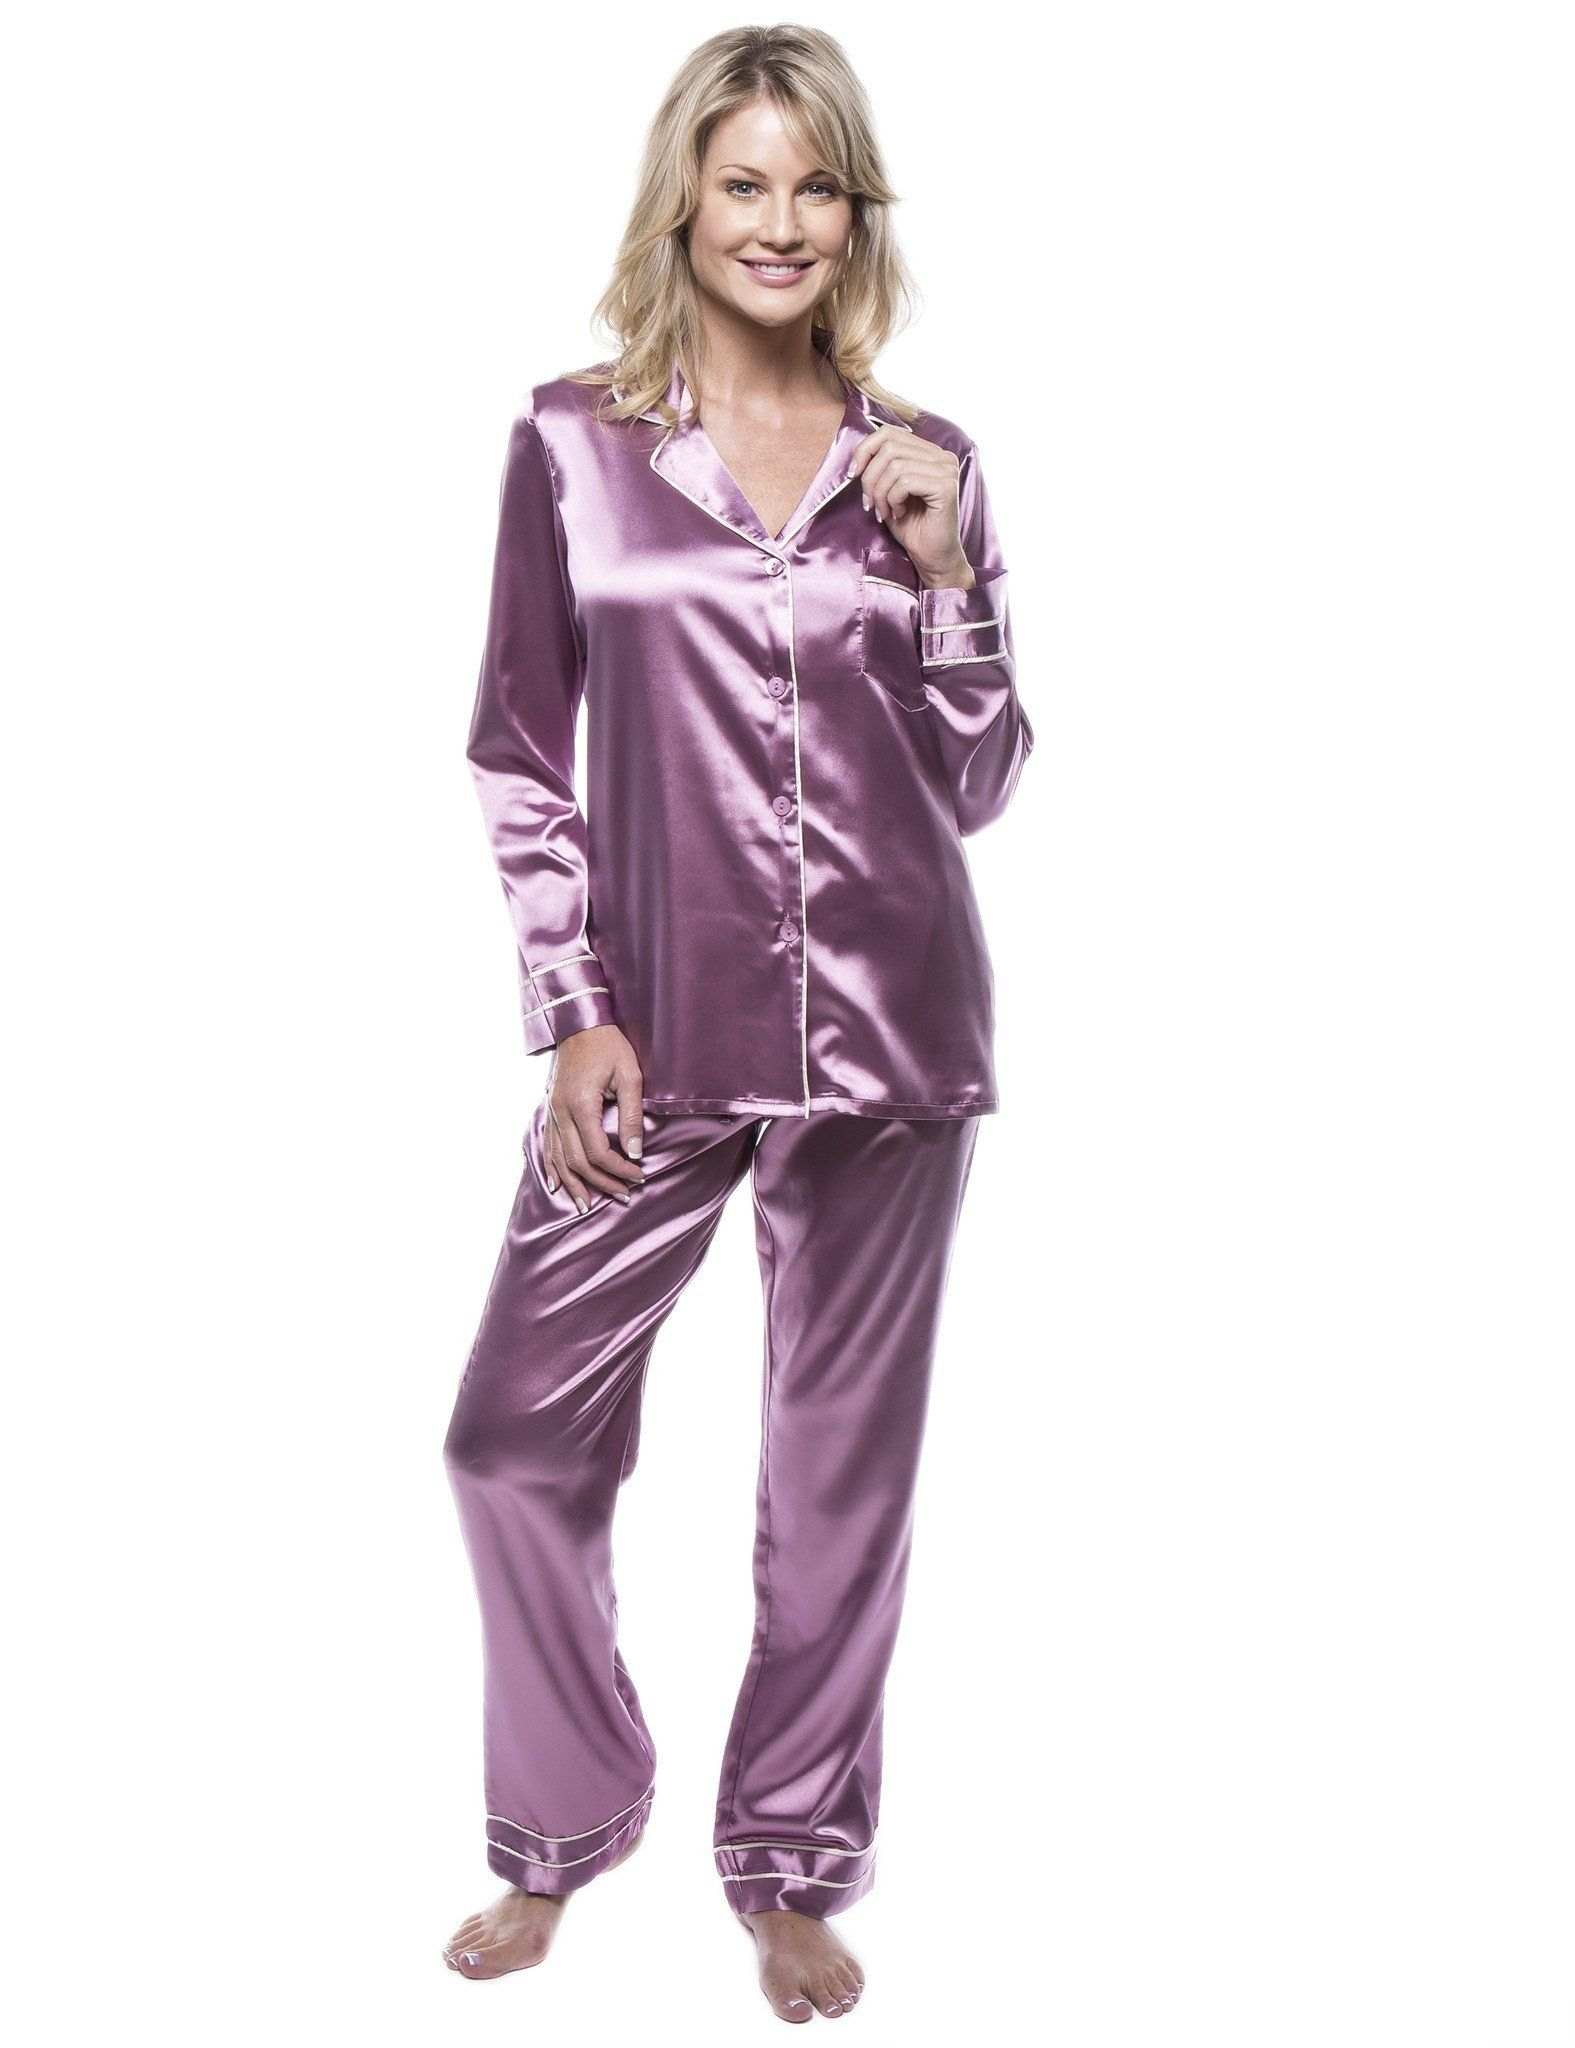 489d3164ffc2 Women s Classic Satin Pajama Set in 2019